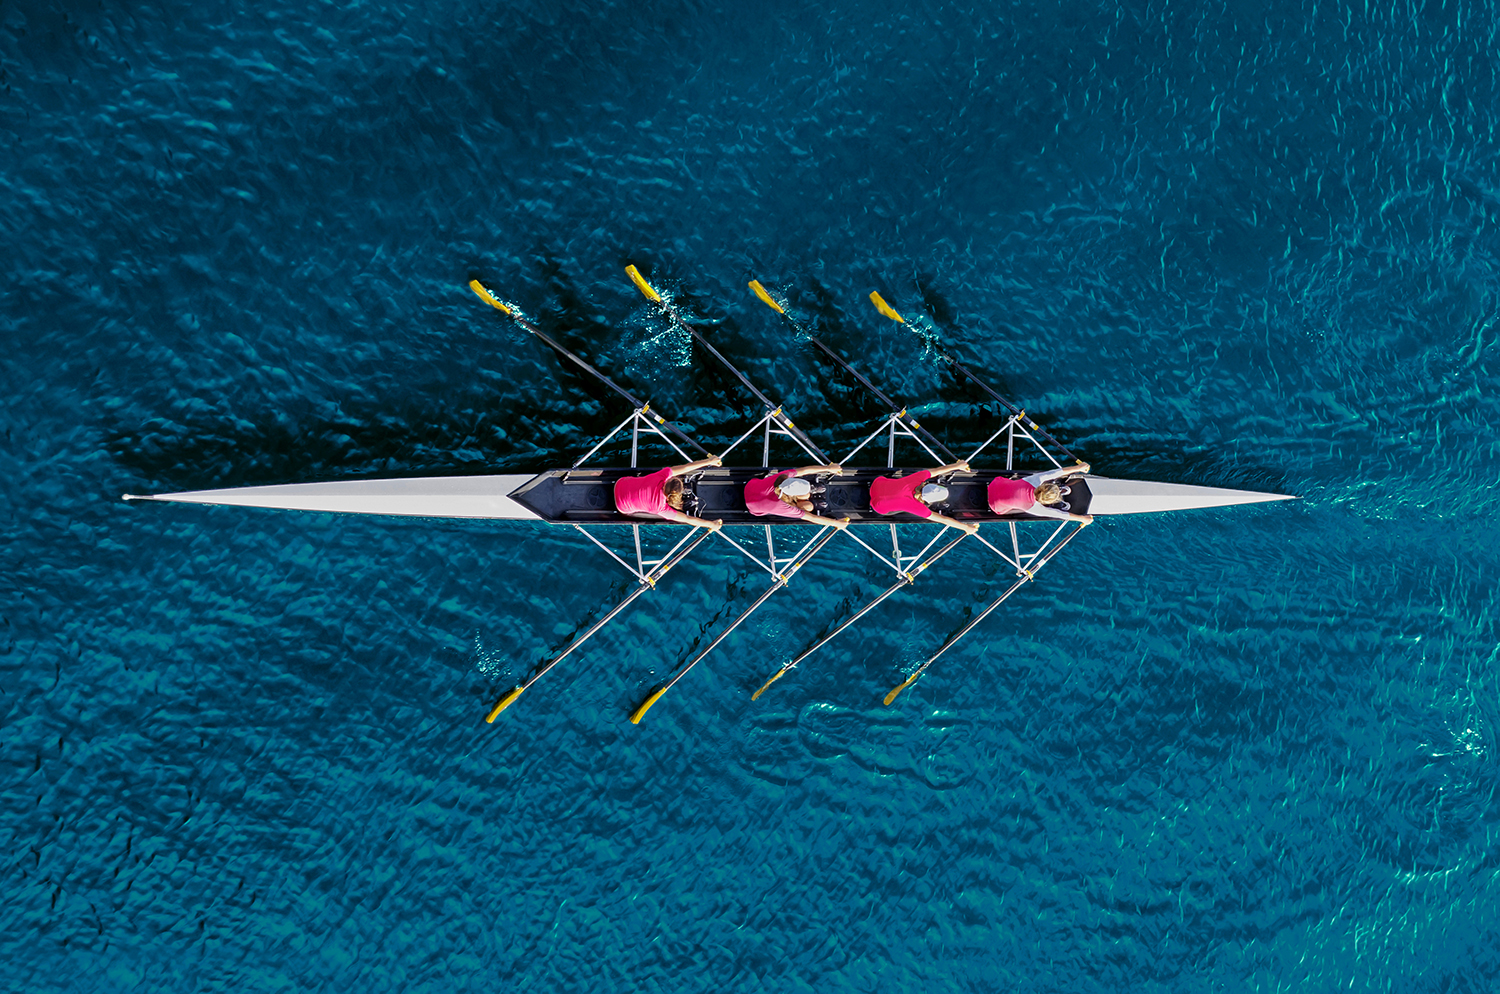 Rowing team in blue water